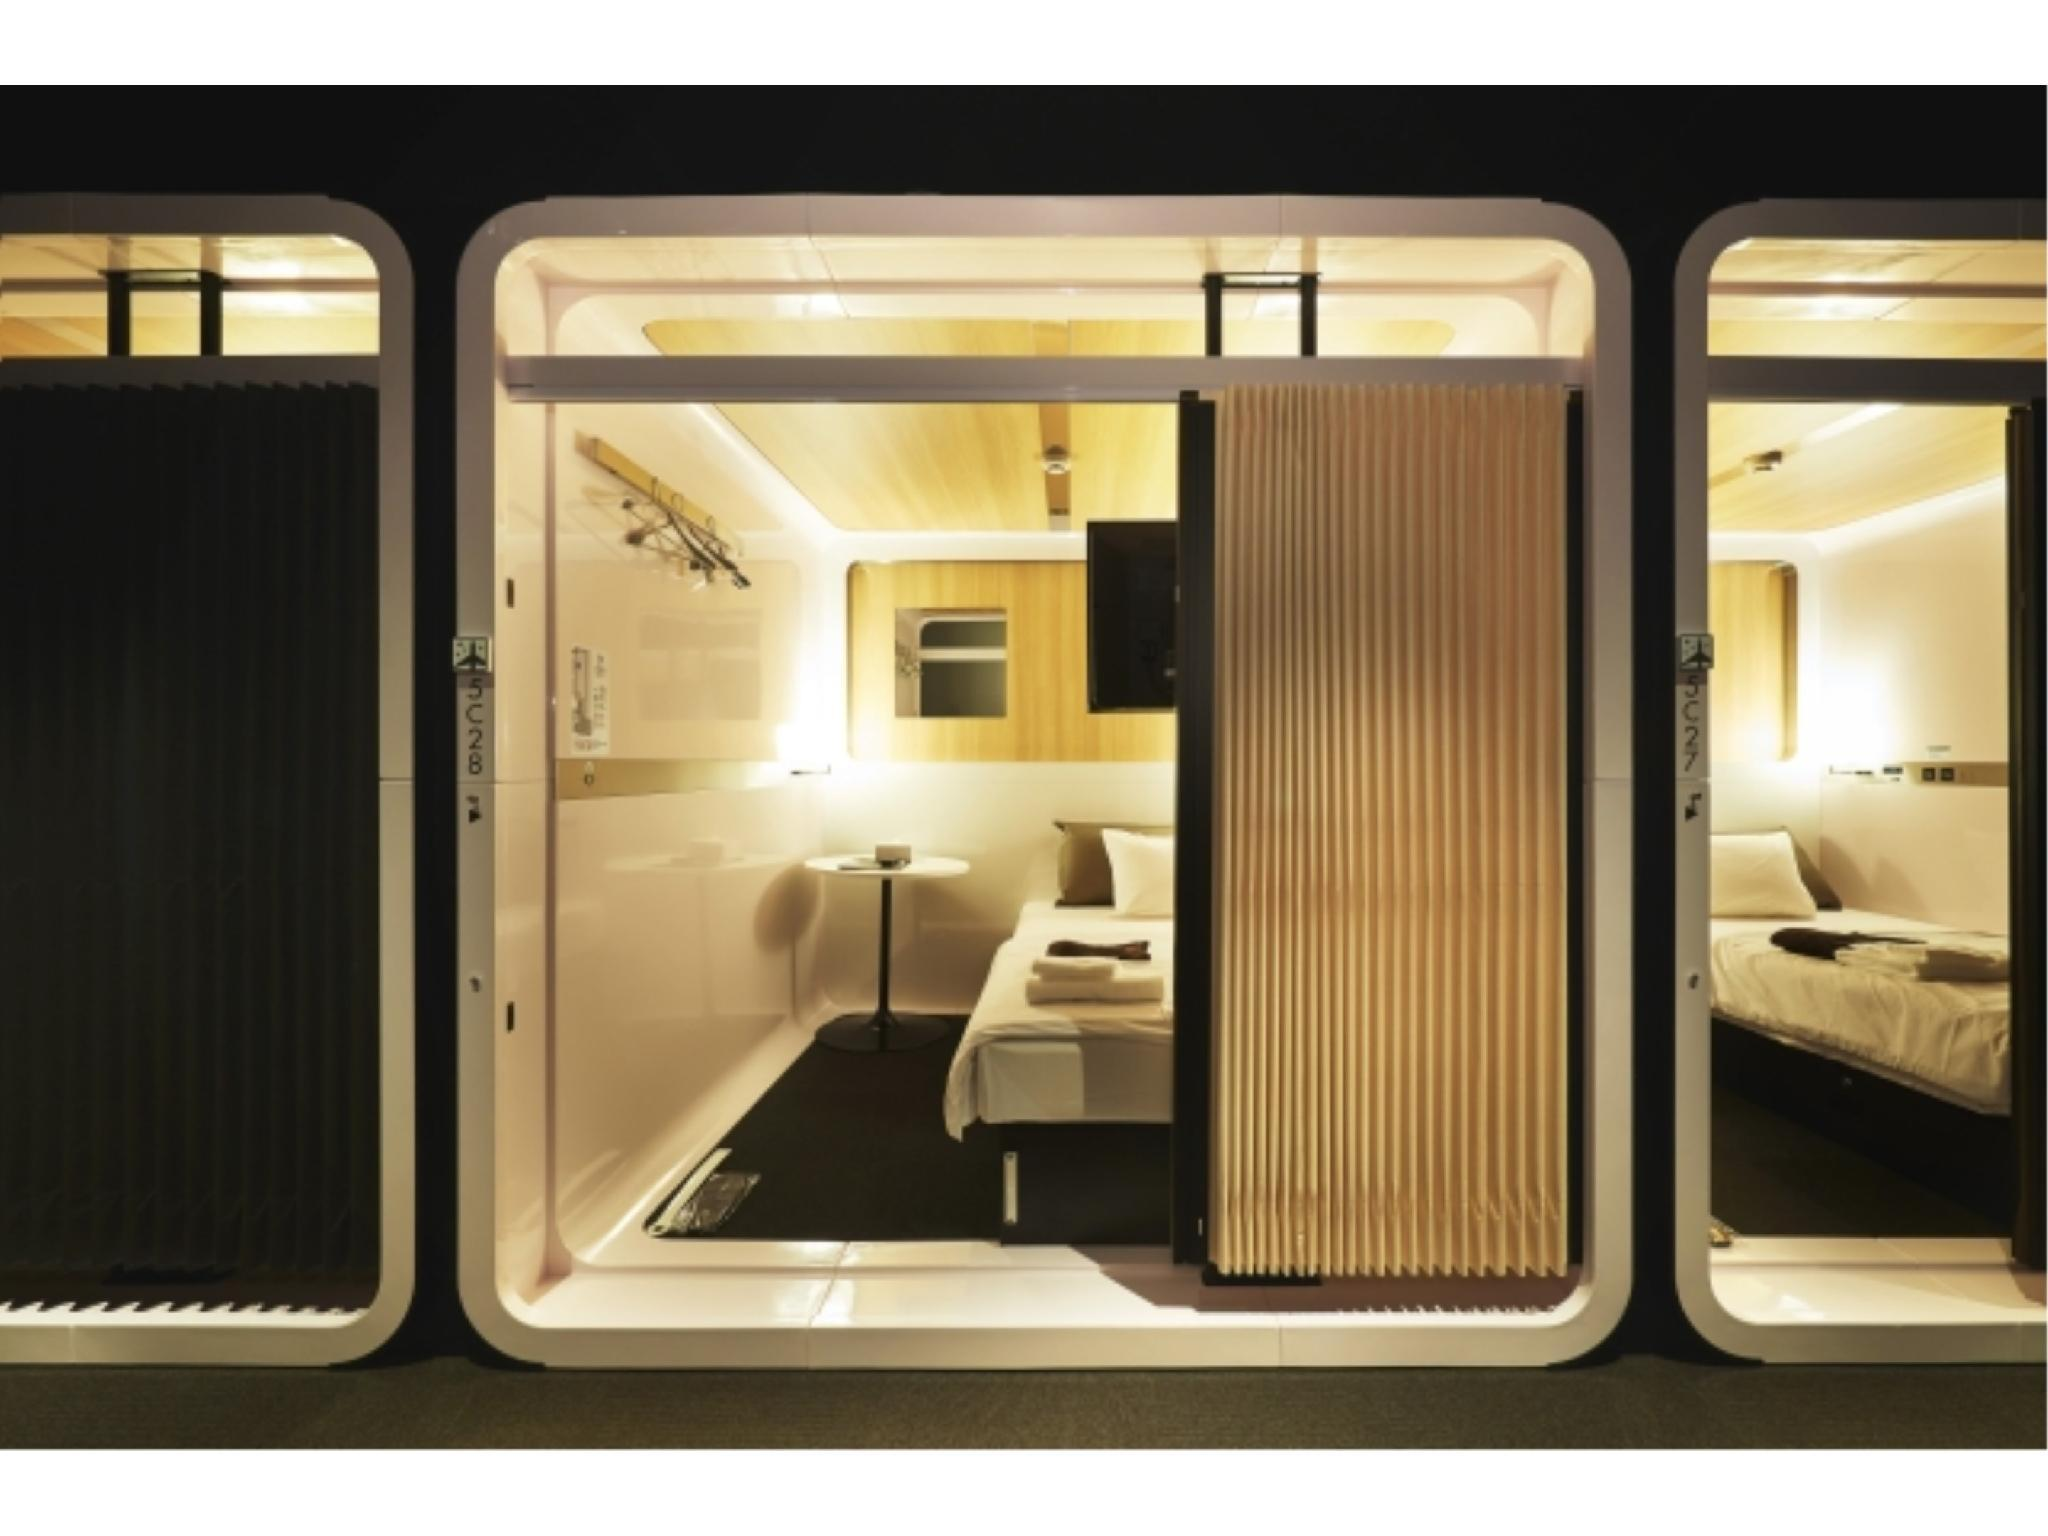 男士頭等客艙房 (Men's First Class Cabin Room)